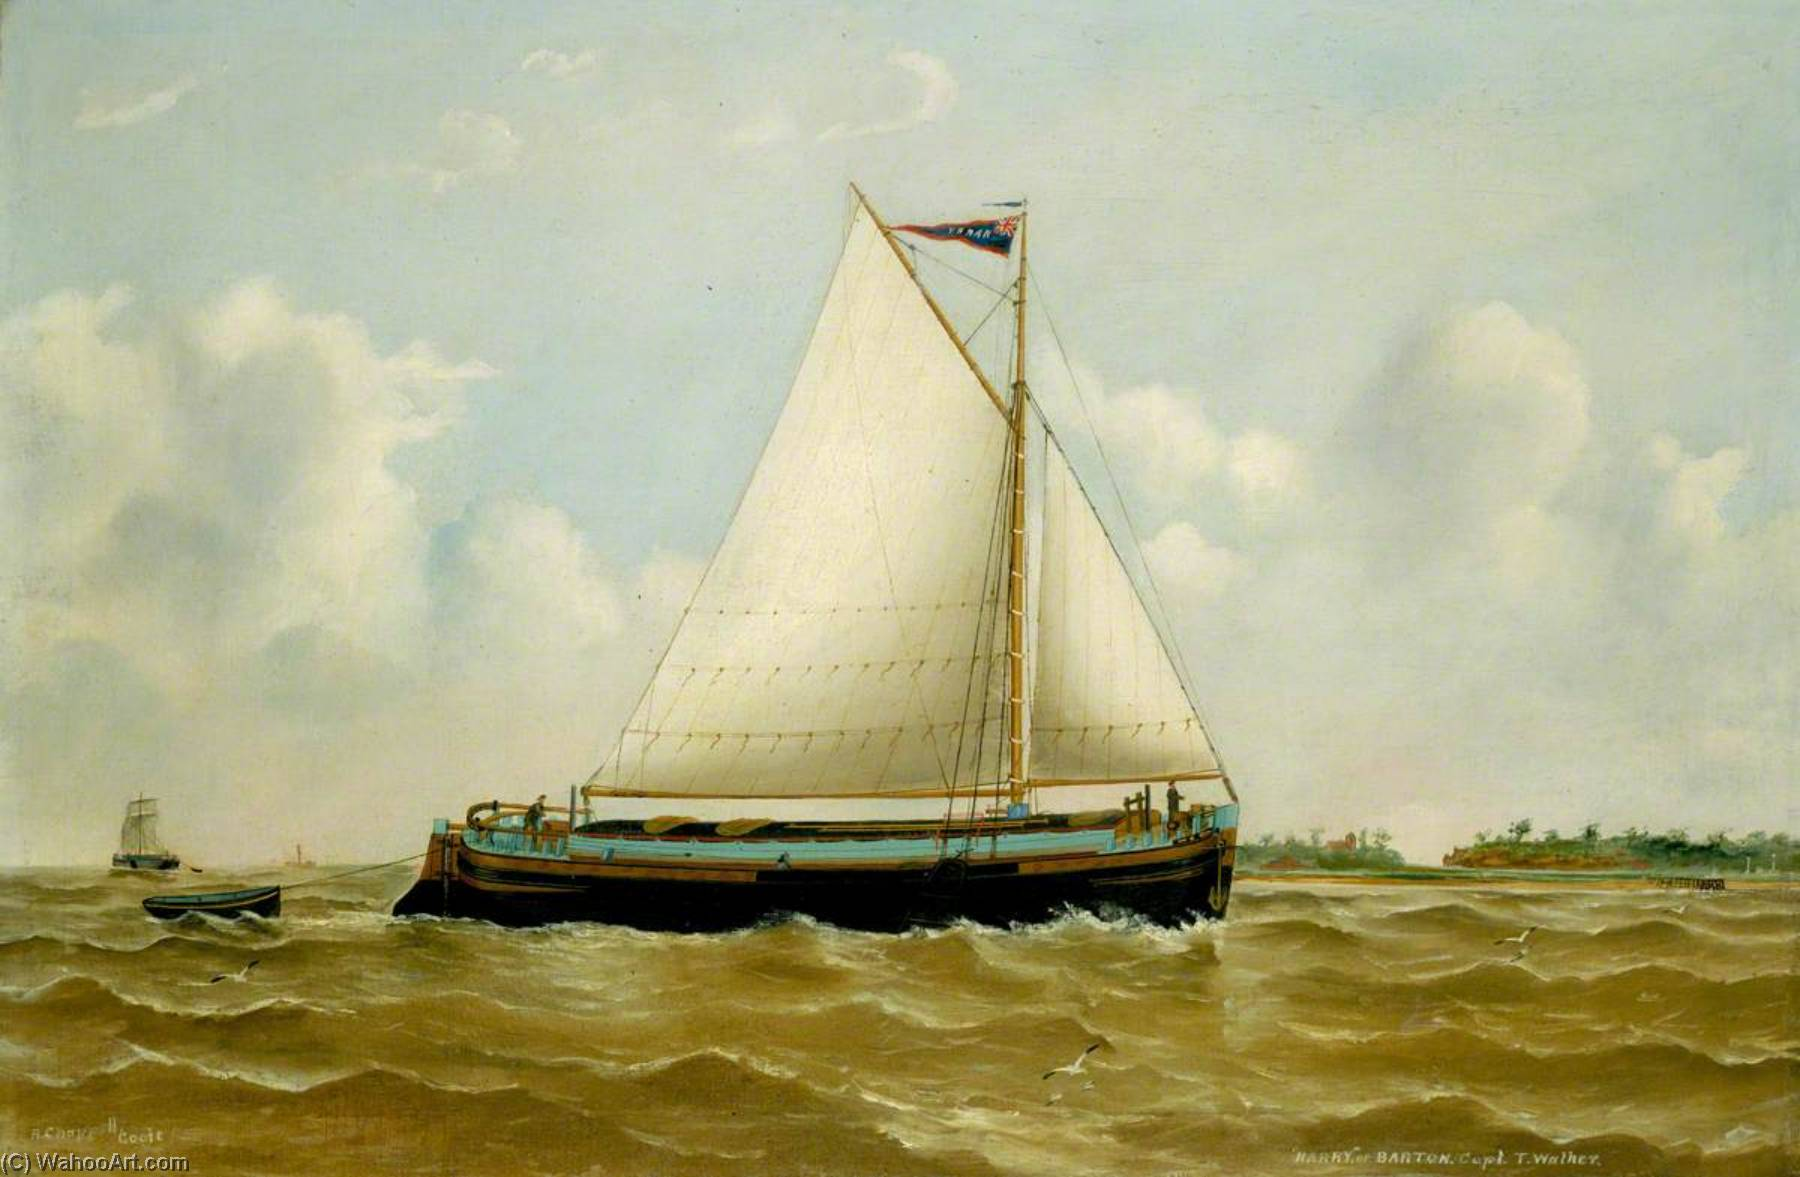 The Humber Sloop 'Harry', Oil On Canvas by Ruben Chappell